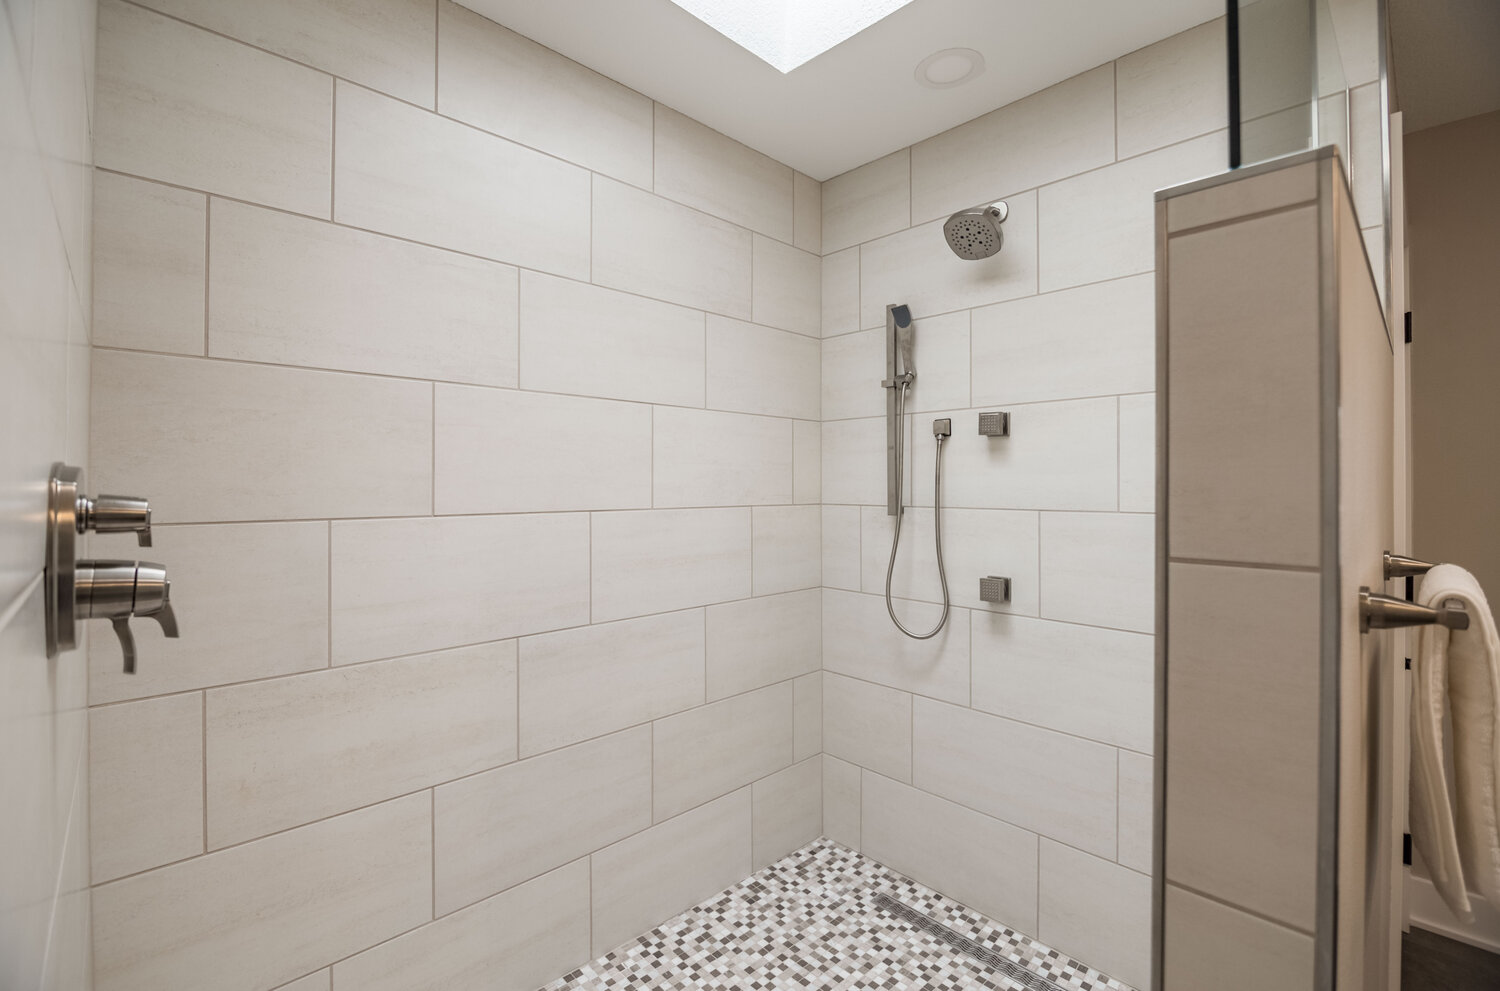 Shower Controls shown outside of spray zone, near entrance.